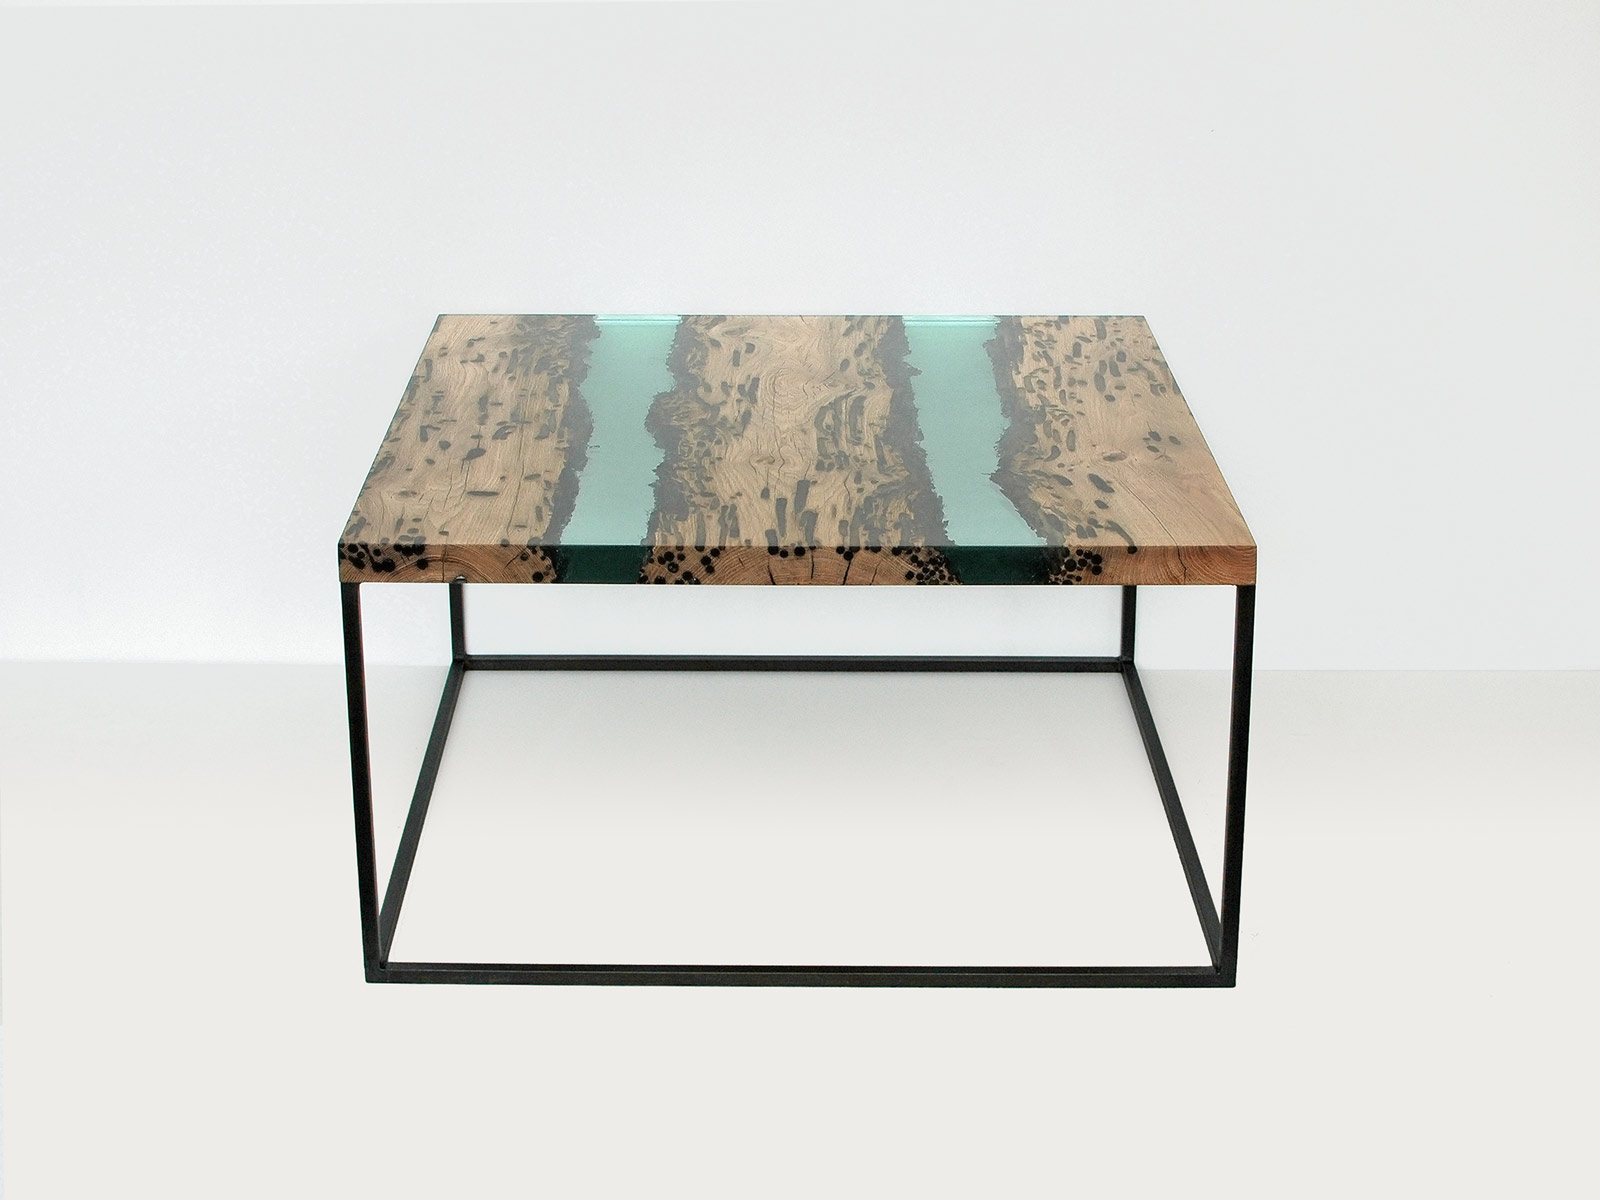 alcarol-jetty-table-bricola-1